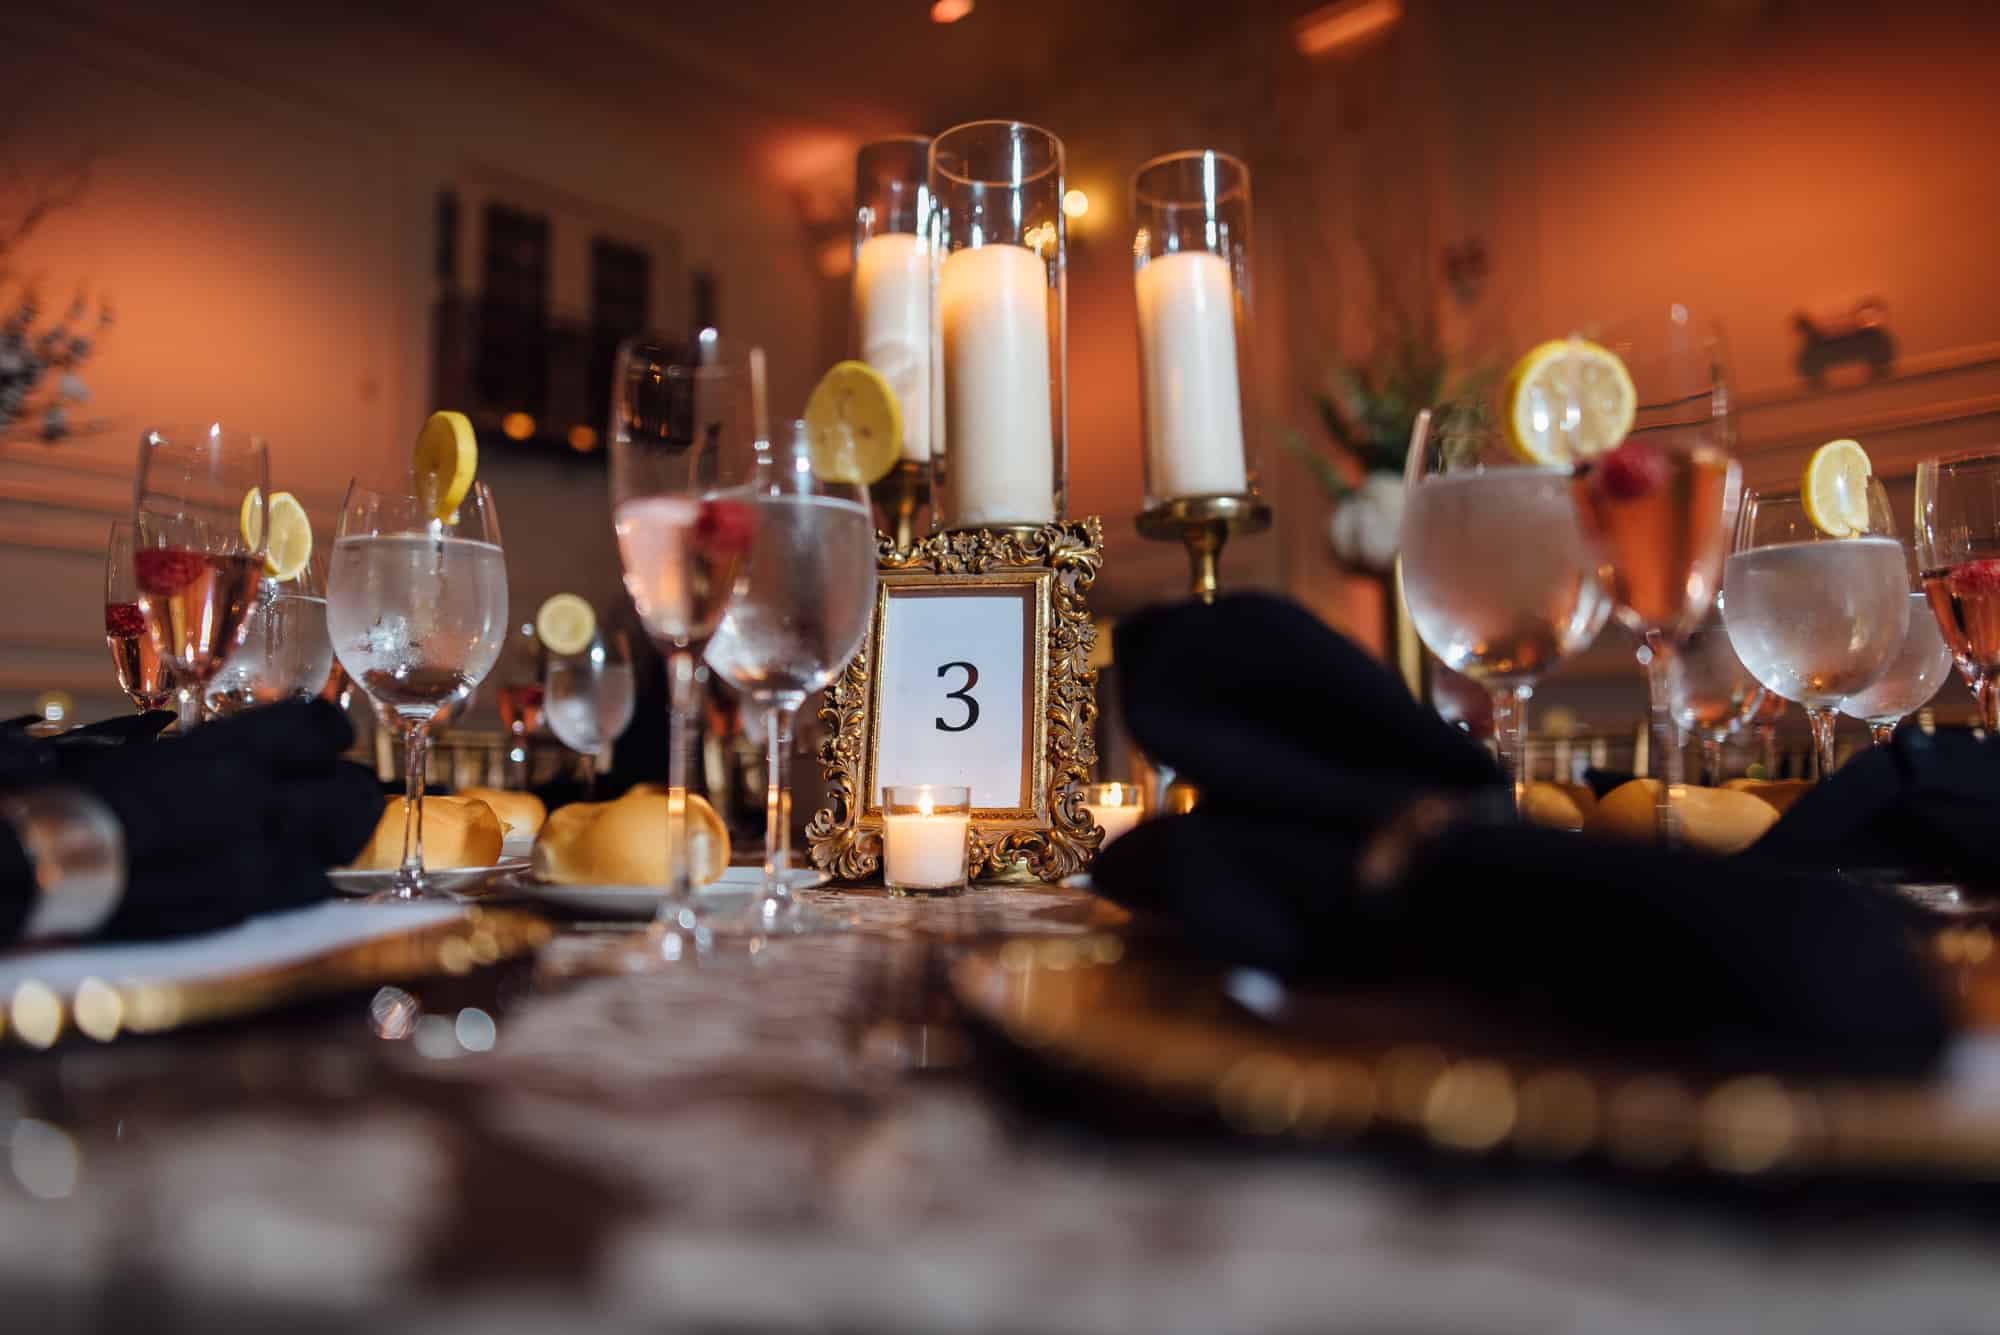 Candle centerpiece on table at wedding reception